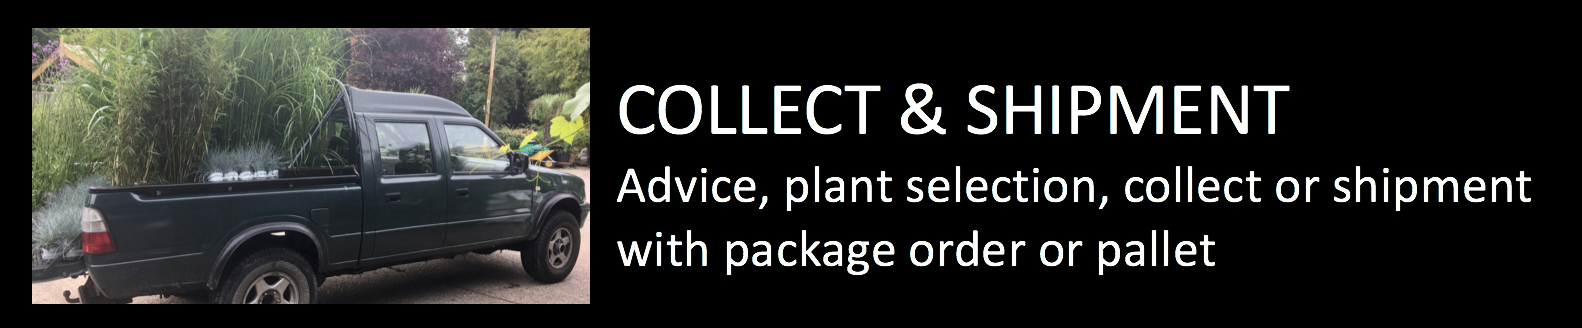 Plantstore collect and shipment advice plantselection collect or shipment with package order or pallet